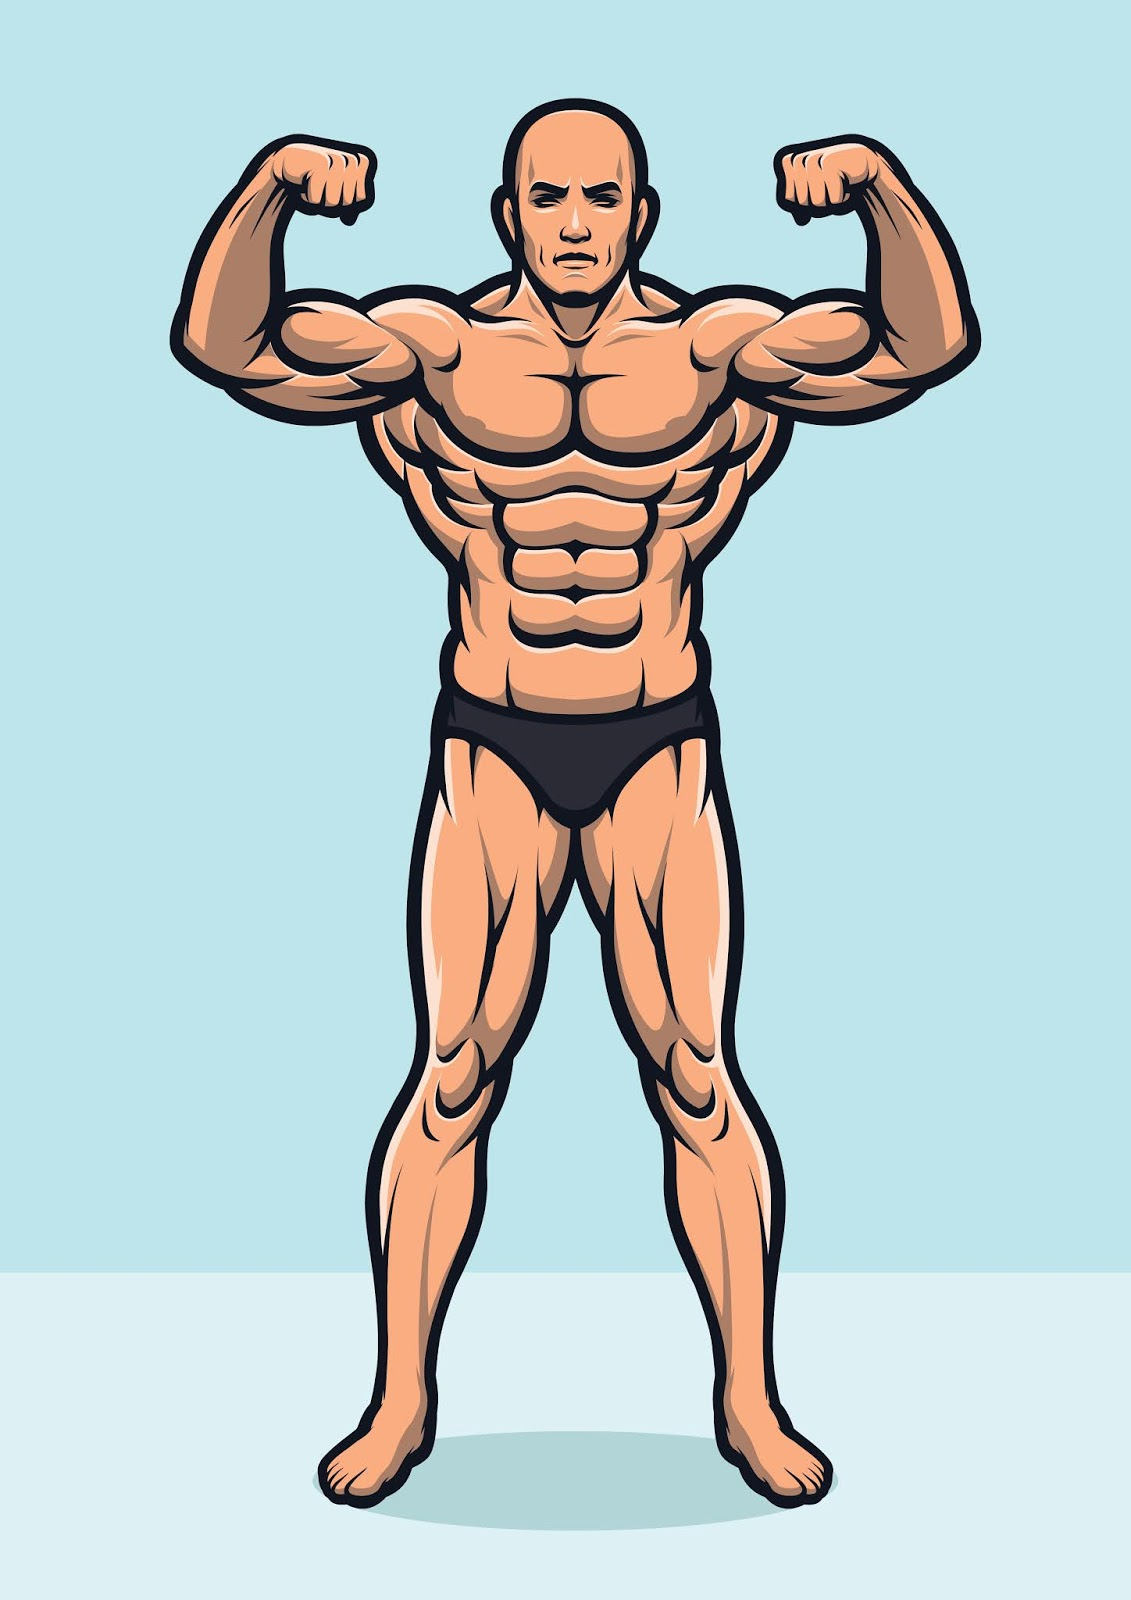 Strong Bodybuilder Full Body Version Free Download Vector CDR, AI, EPS and PNG Formats